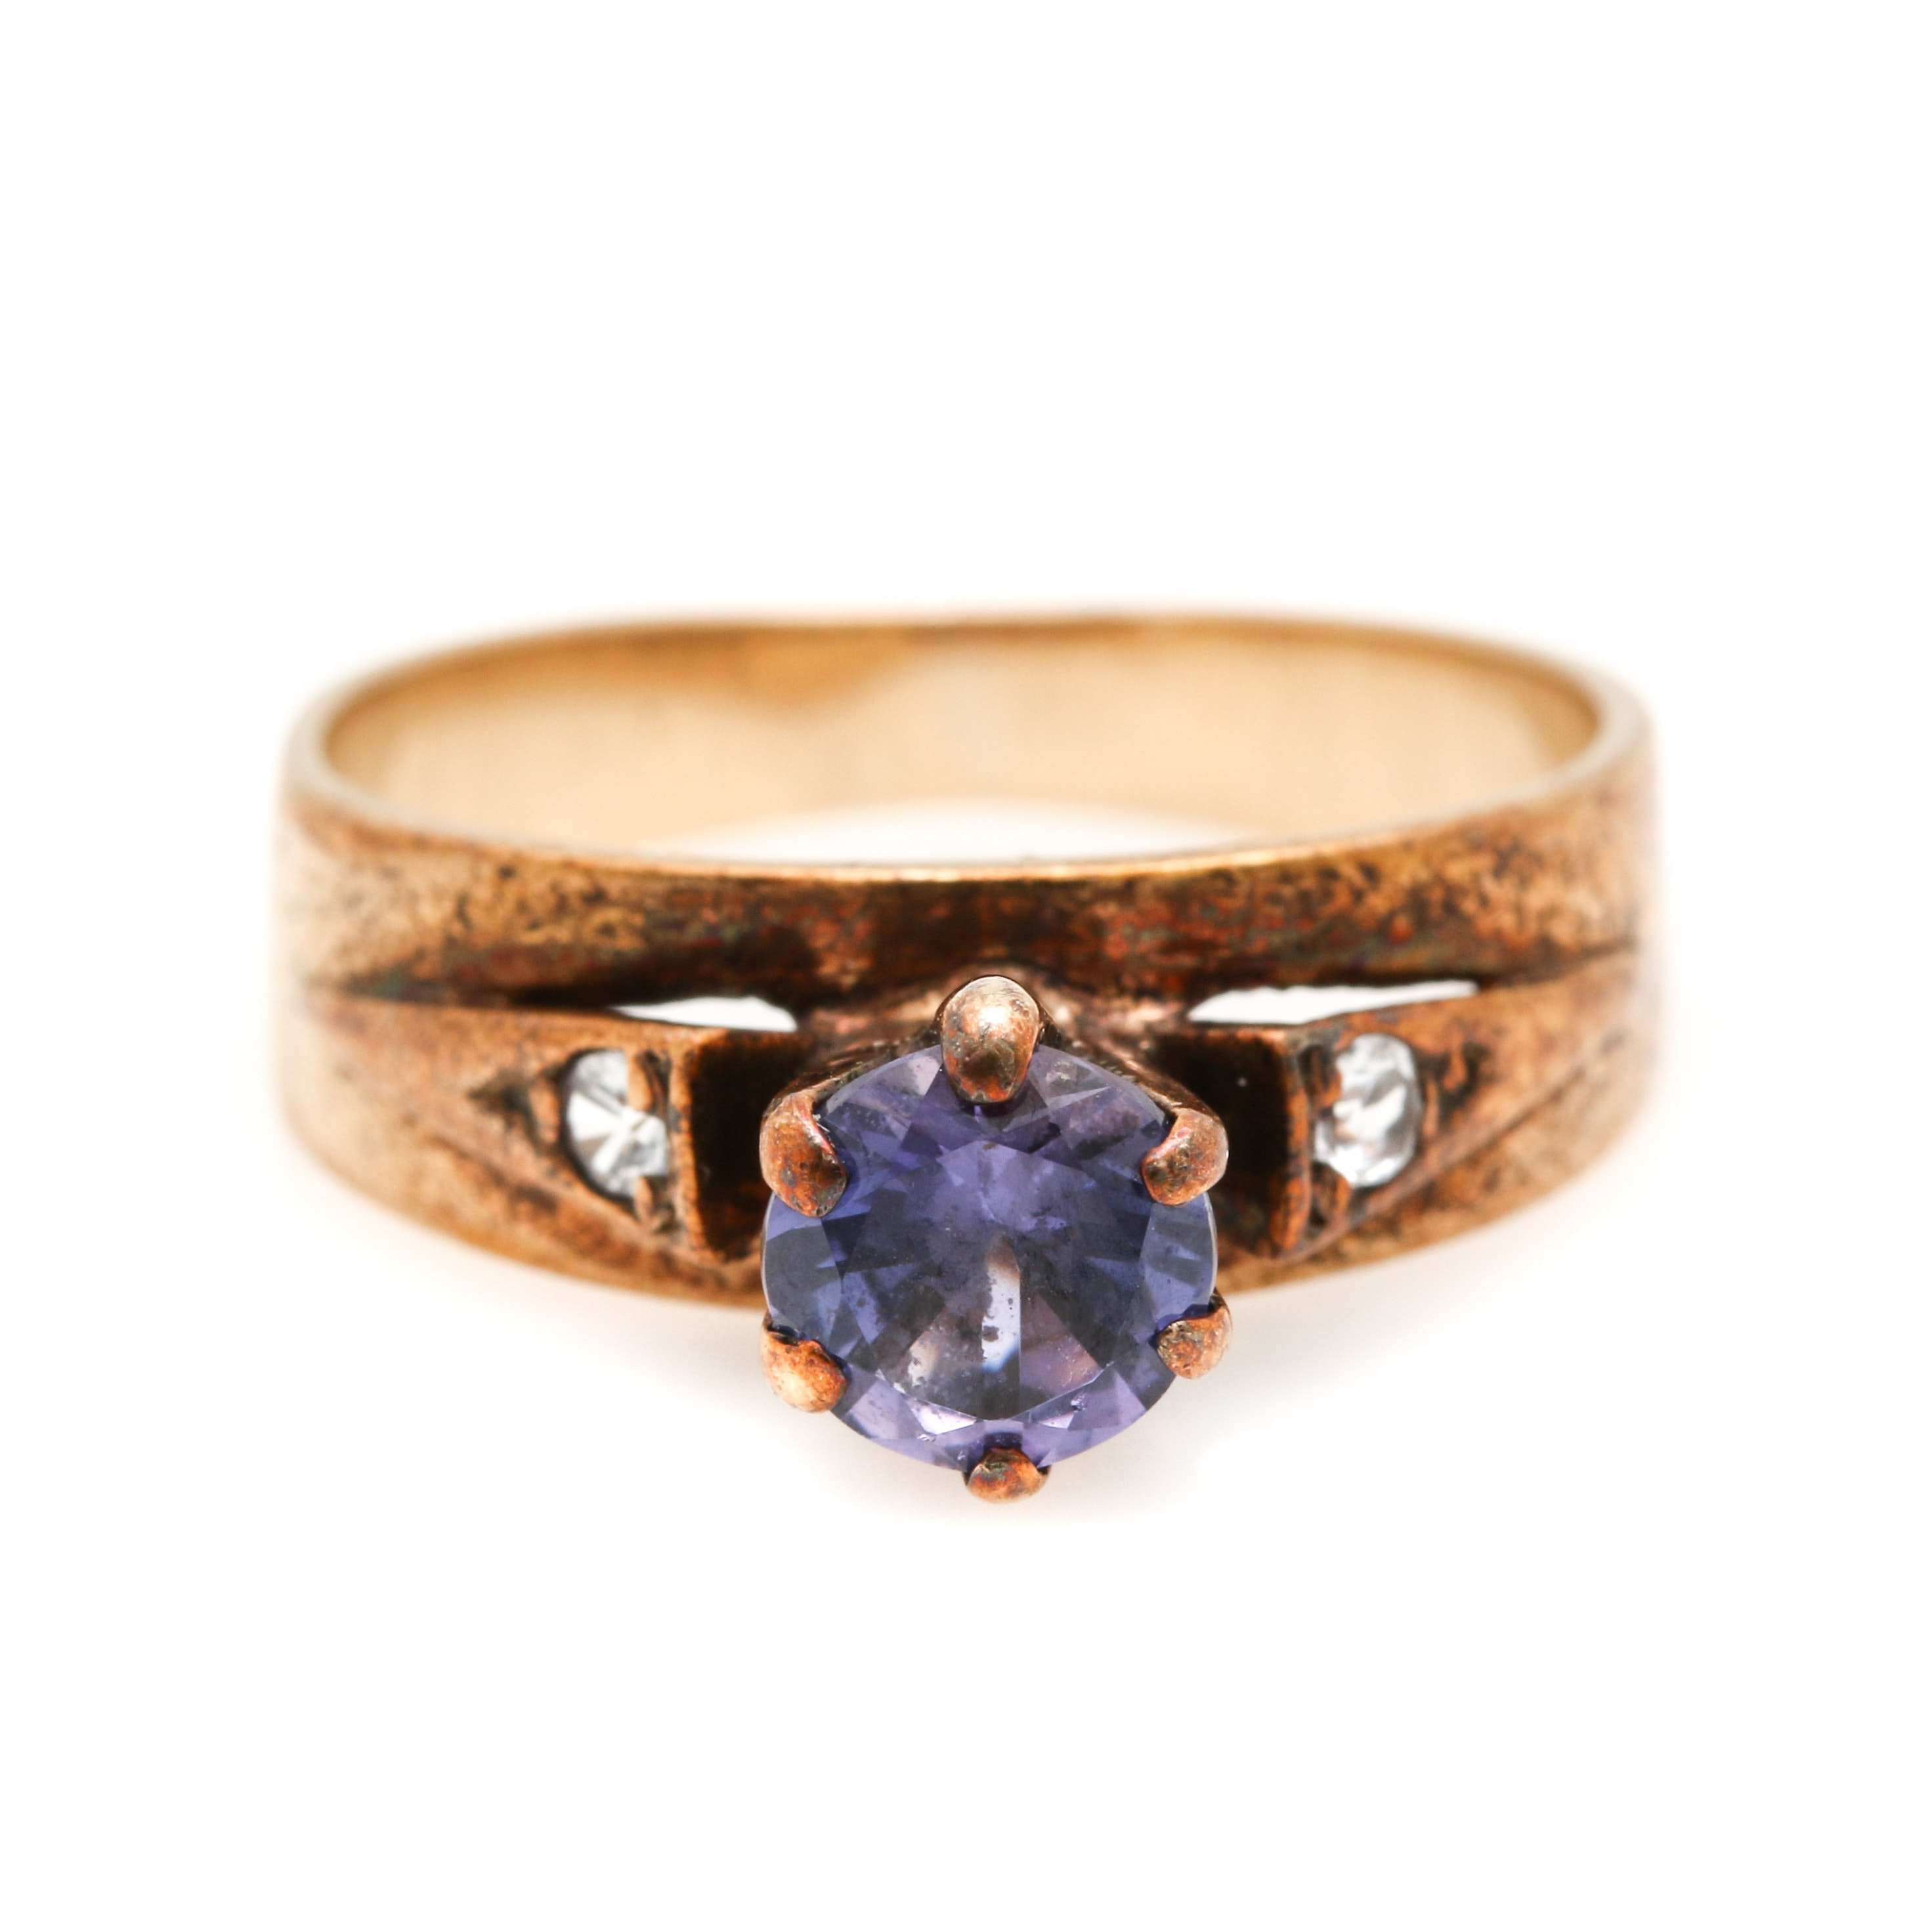 9K Yellow Gold Sapphire and Quartz Ring